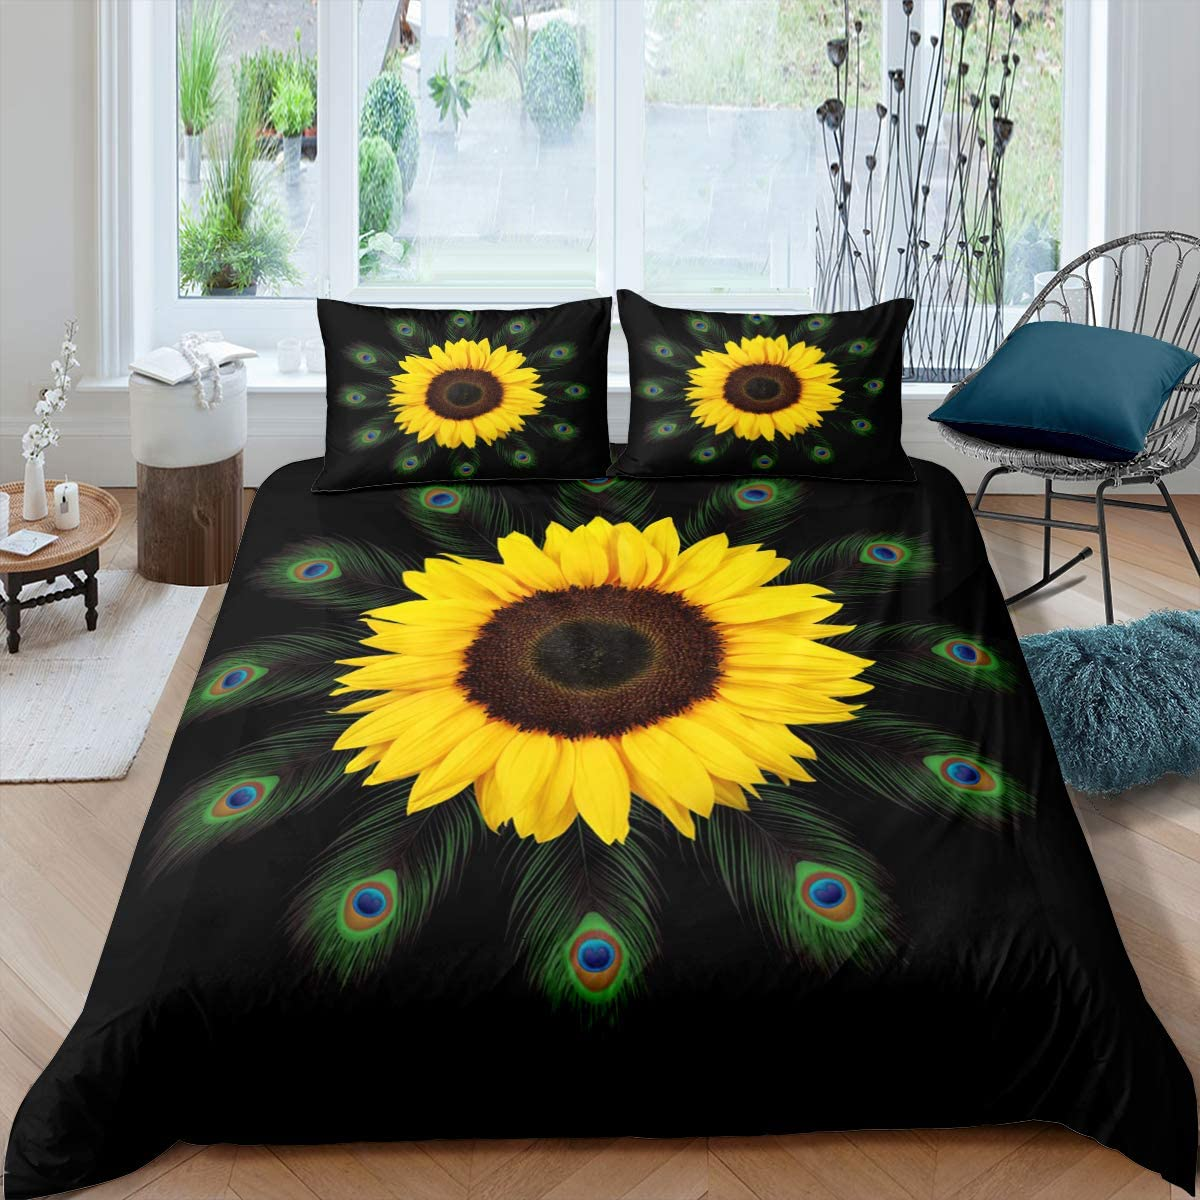 Erosebridal Sunflower Comforter Cover Green Peacock Feather Bedding Set Yellow Floral Botanical Duvet Cover for Kids Girls Women Wild Animal Skin Element Quilt Cover with 2 Pillow Cases Queen Size